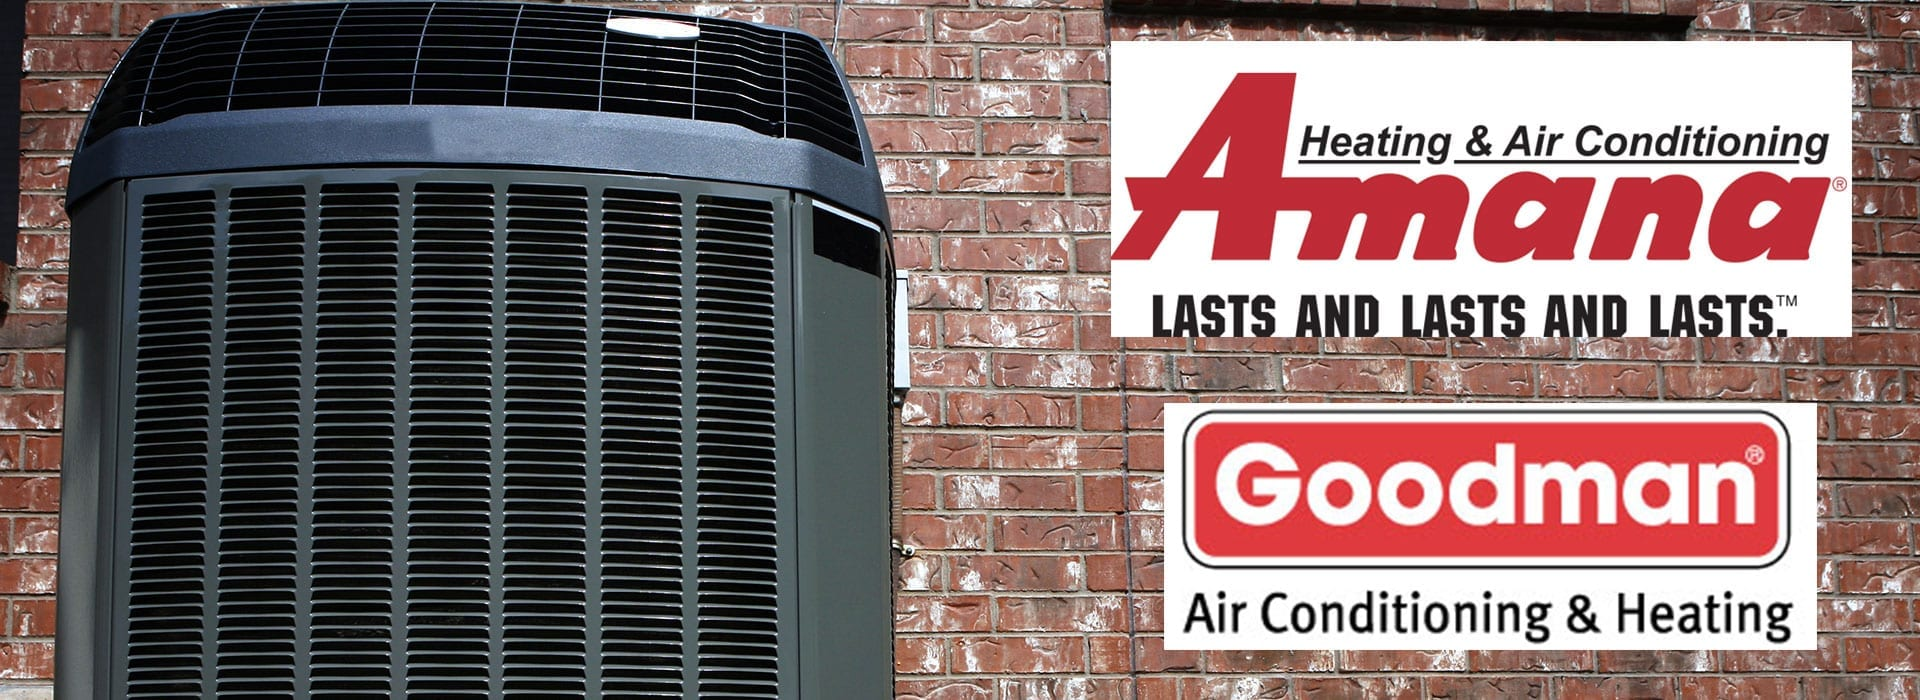 furnace and air conditioner repair service in wood river illinois